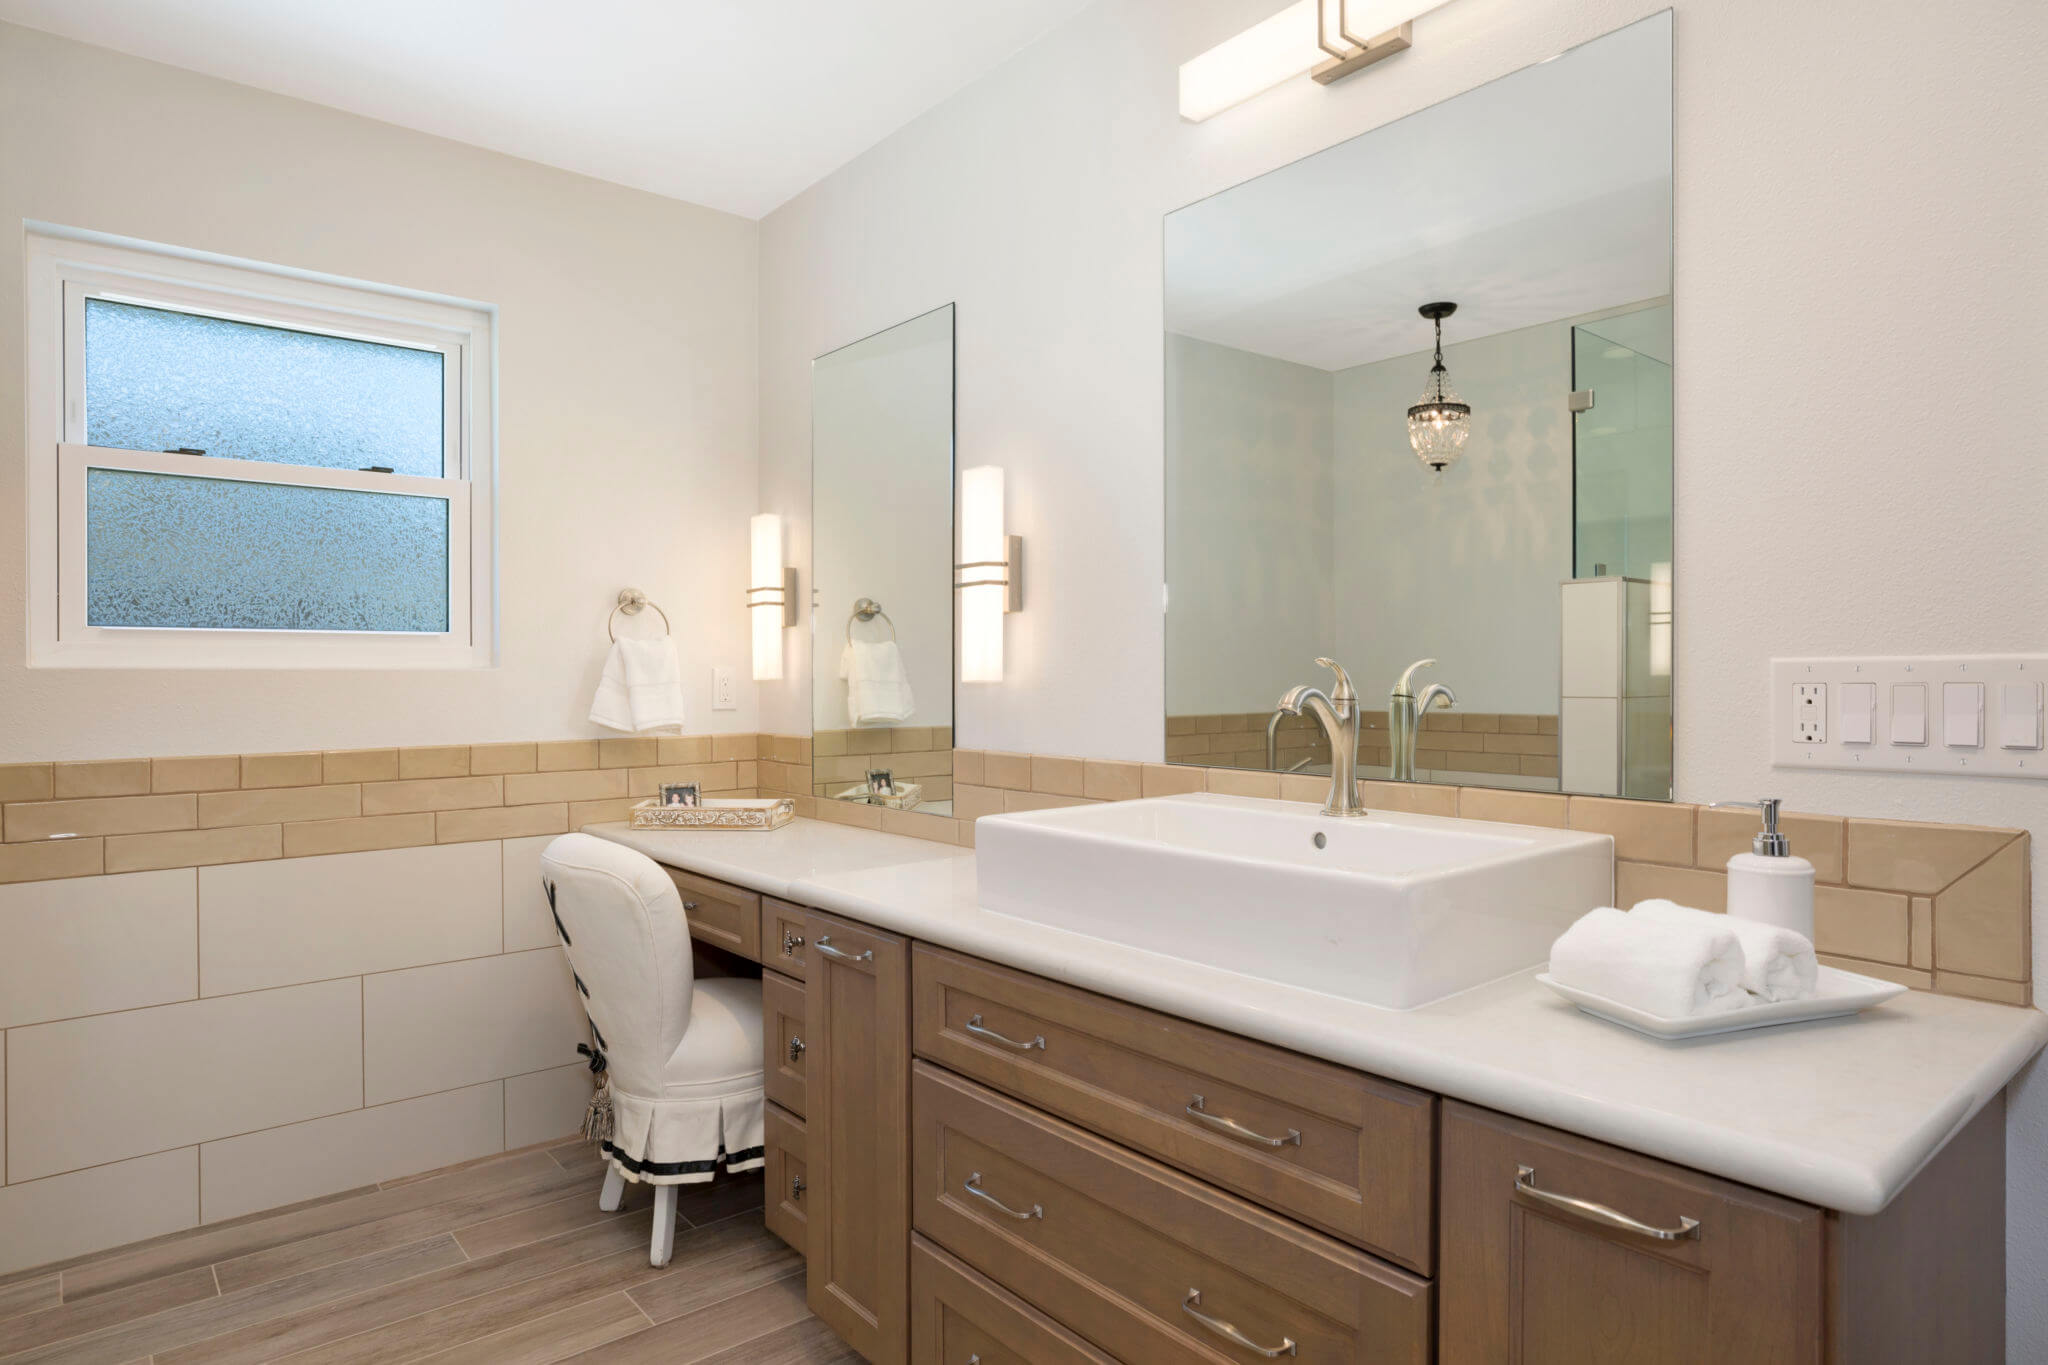 brown and white master bathroom vanity with a single sink